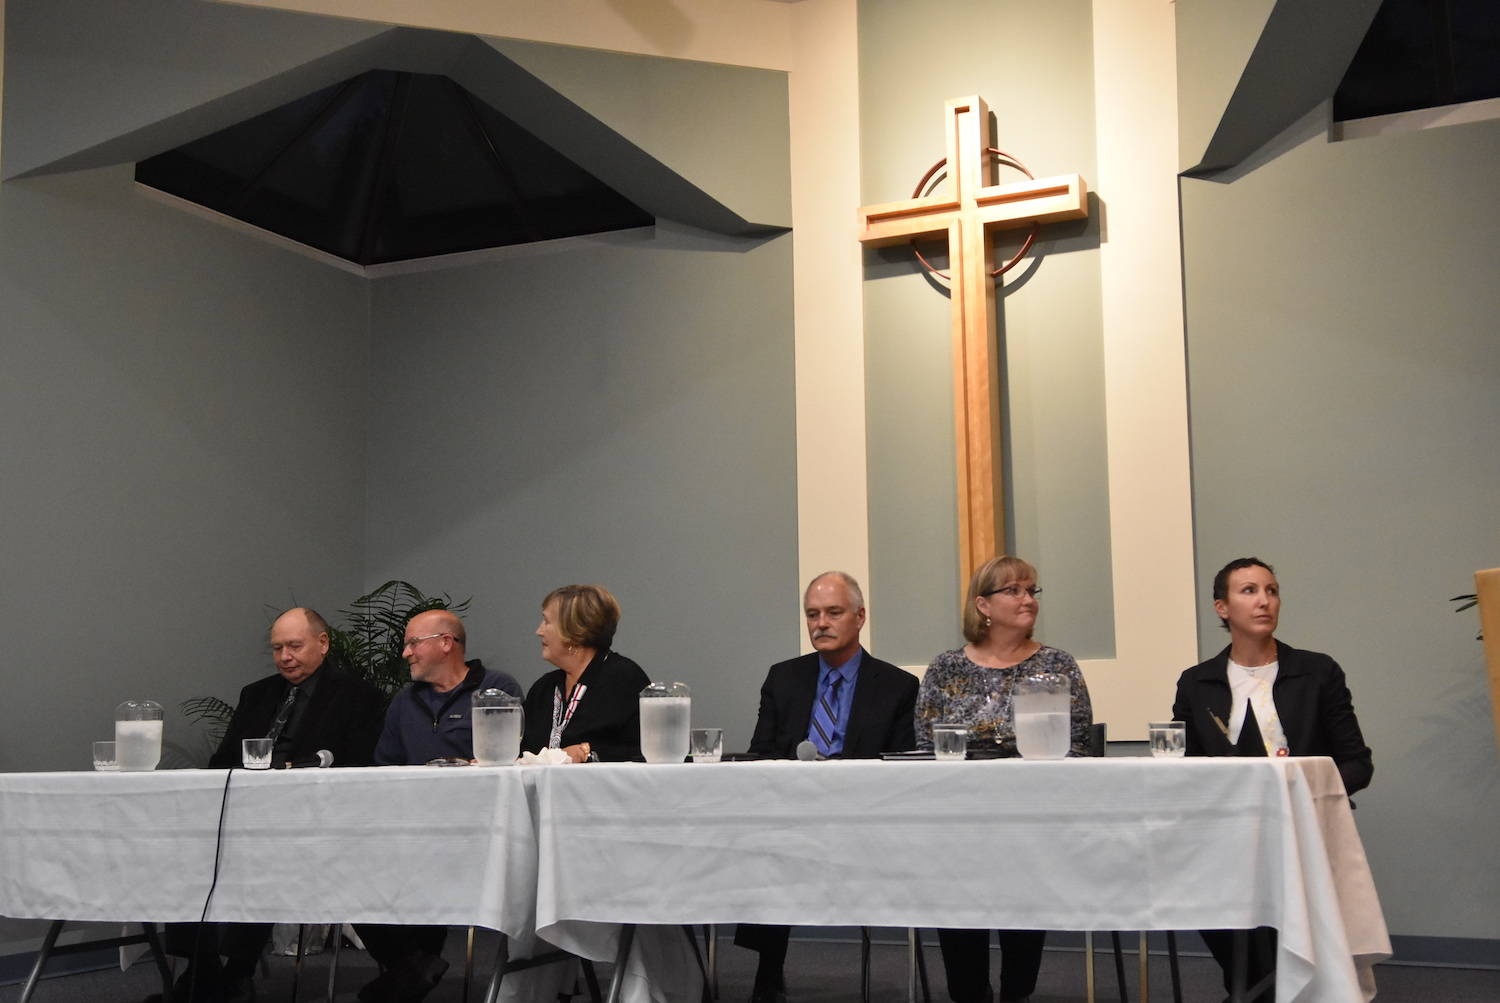 North Saanich council, with newcomers Brett Smyth and Joscelyn Barnard, introduced themselves to their community after being elected Oct. 20. (Peninsula News Review file photo)